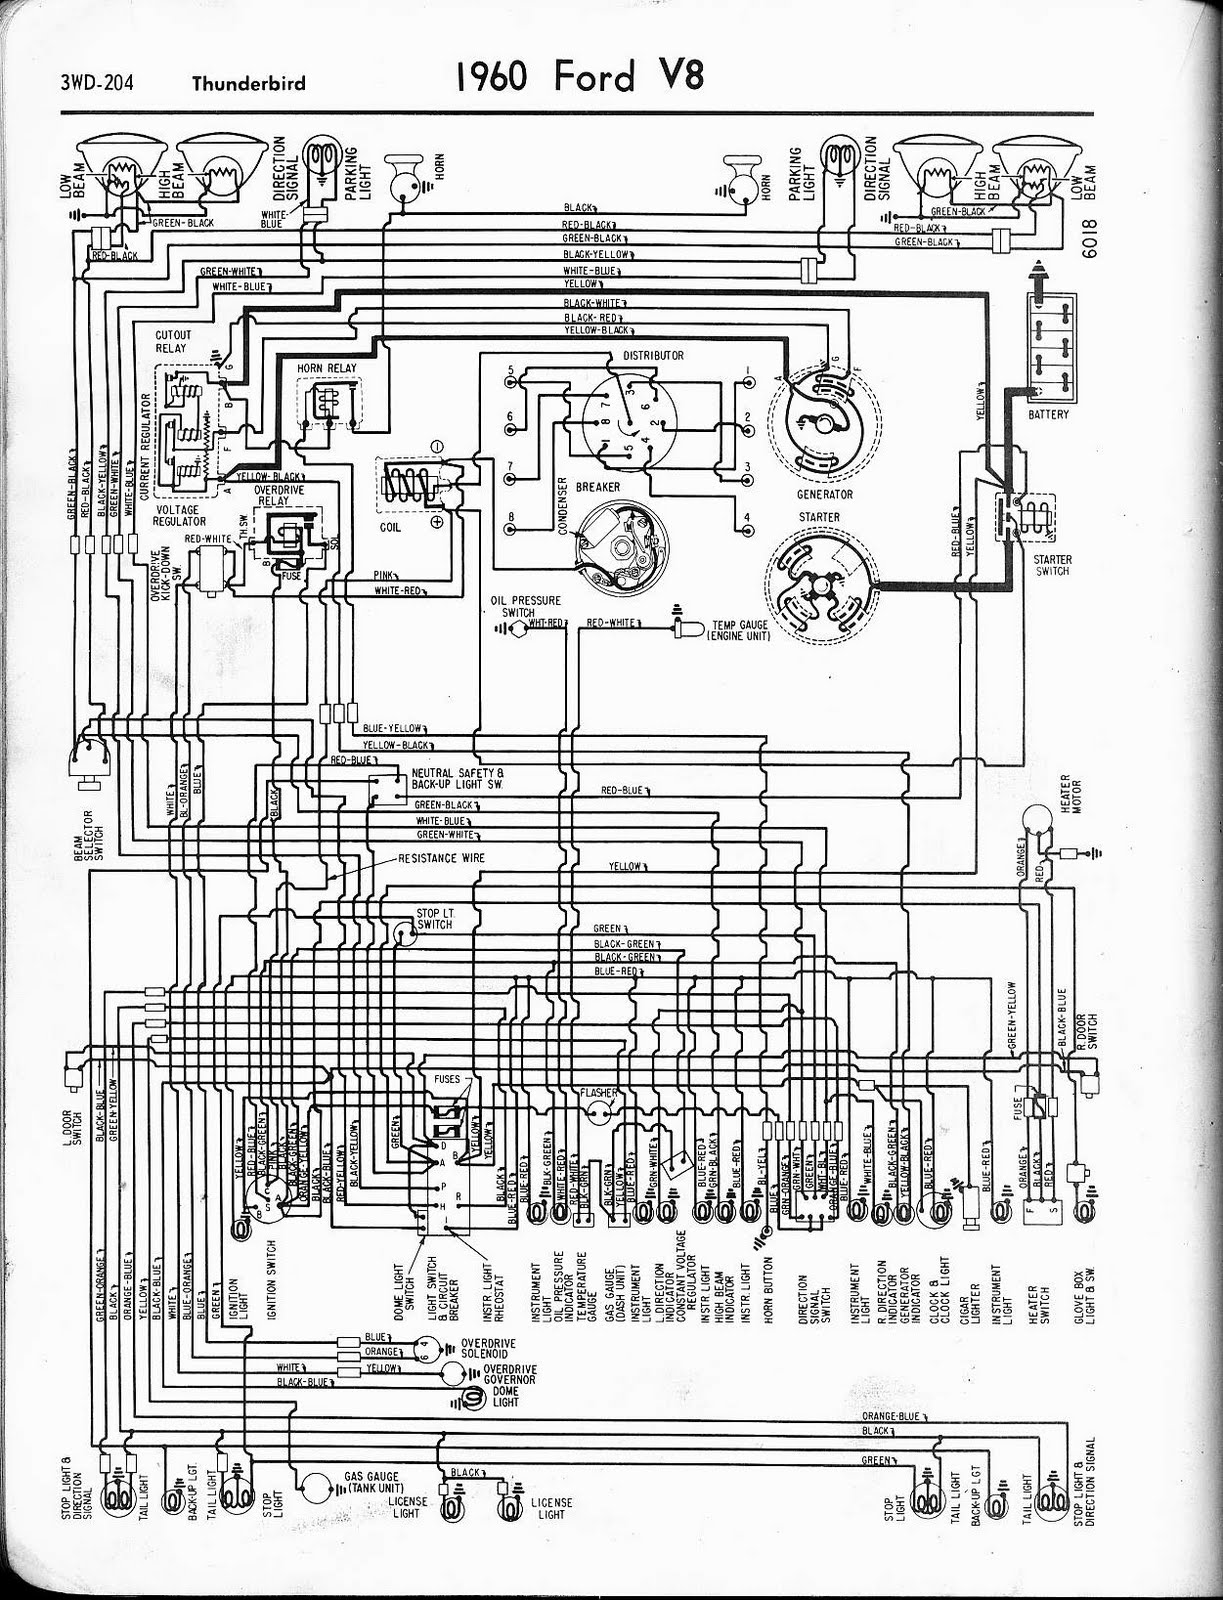 1961 thunderbird wiring diagram - wiring diagram schematic girl-total -  girl-total.aliceviola.it  aliceviola.it